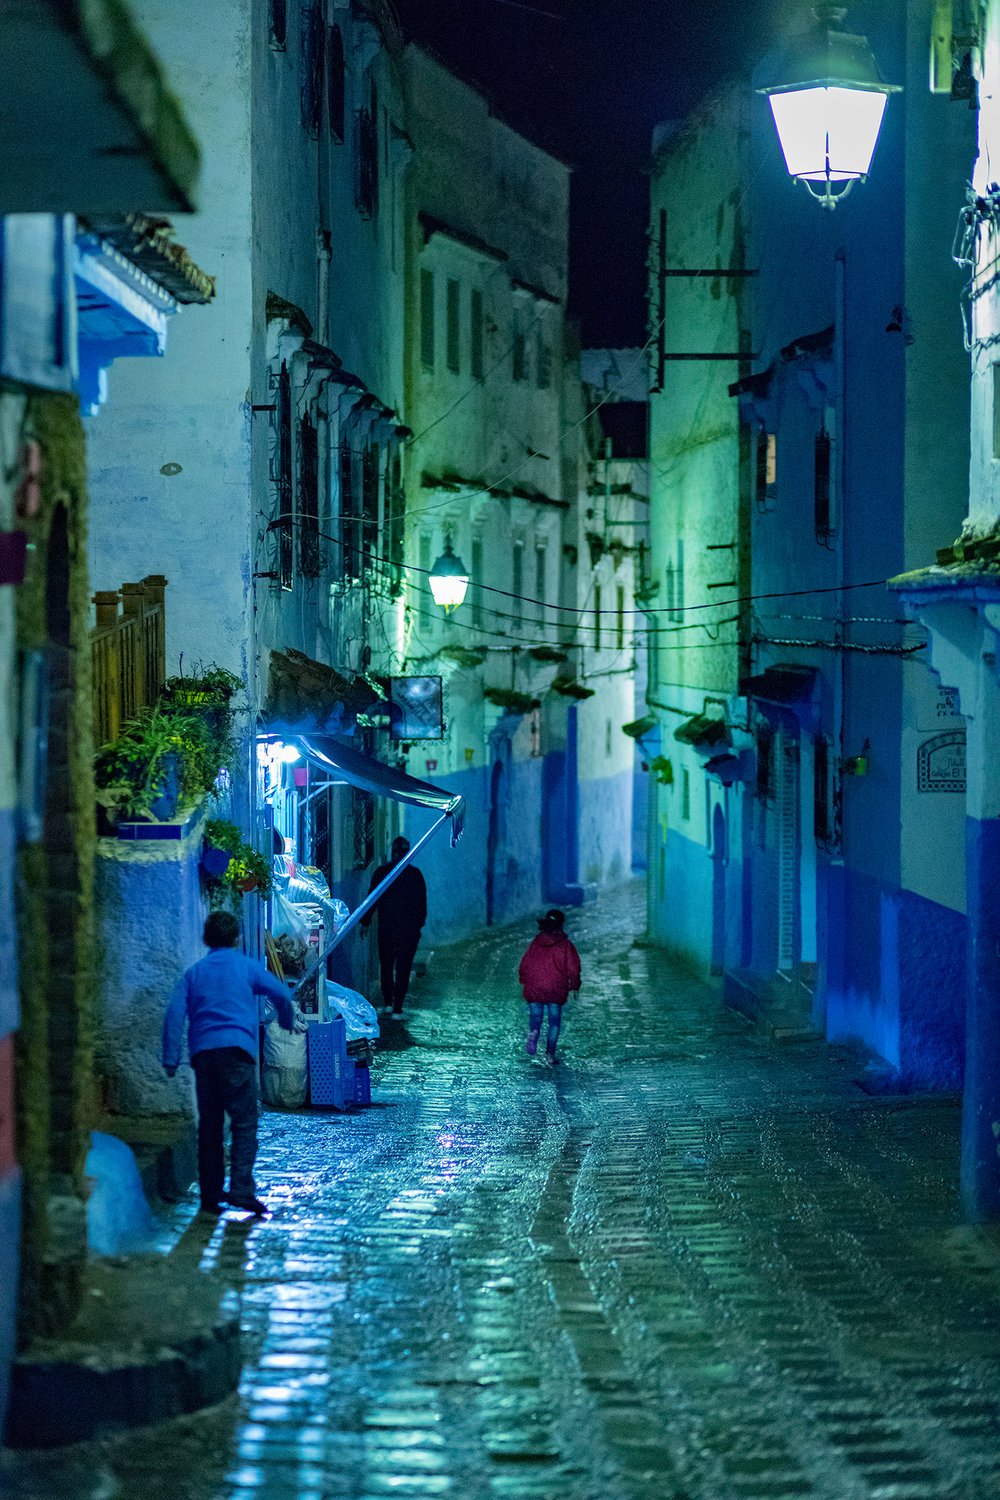 The blue village is a mystical place at night.